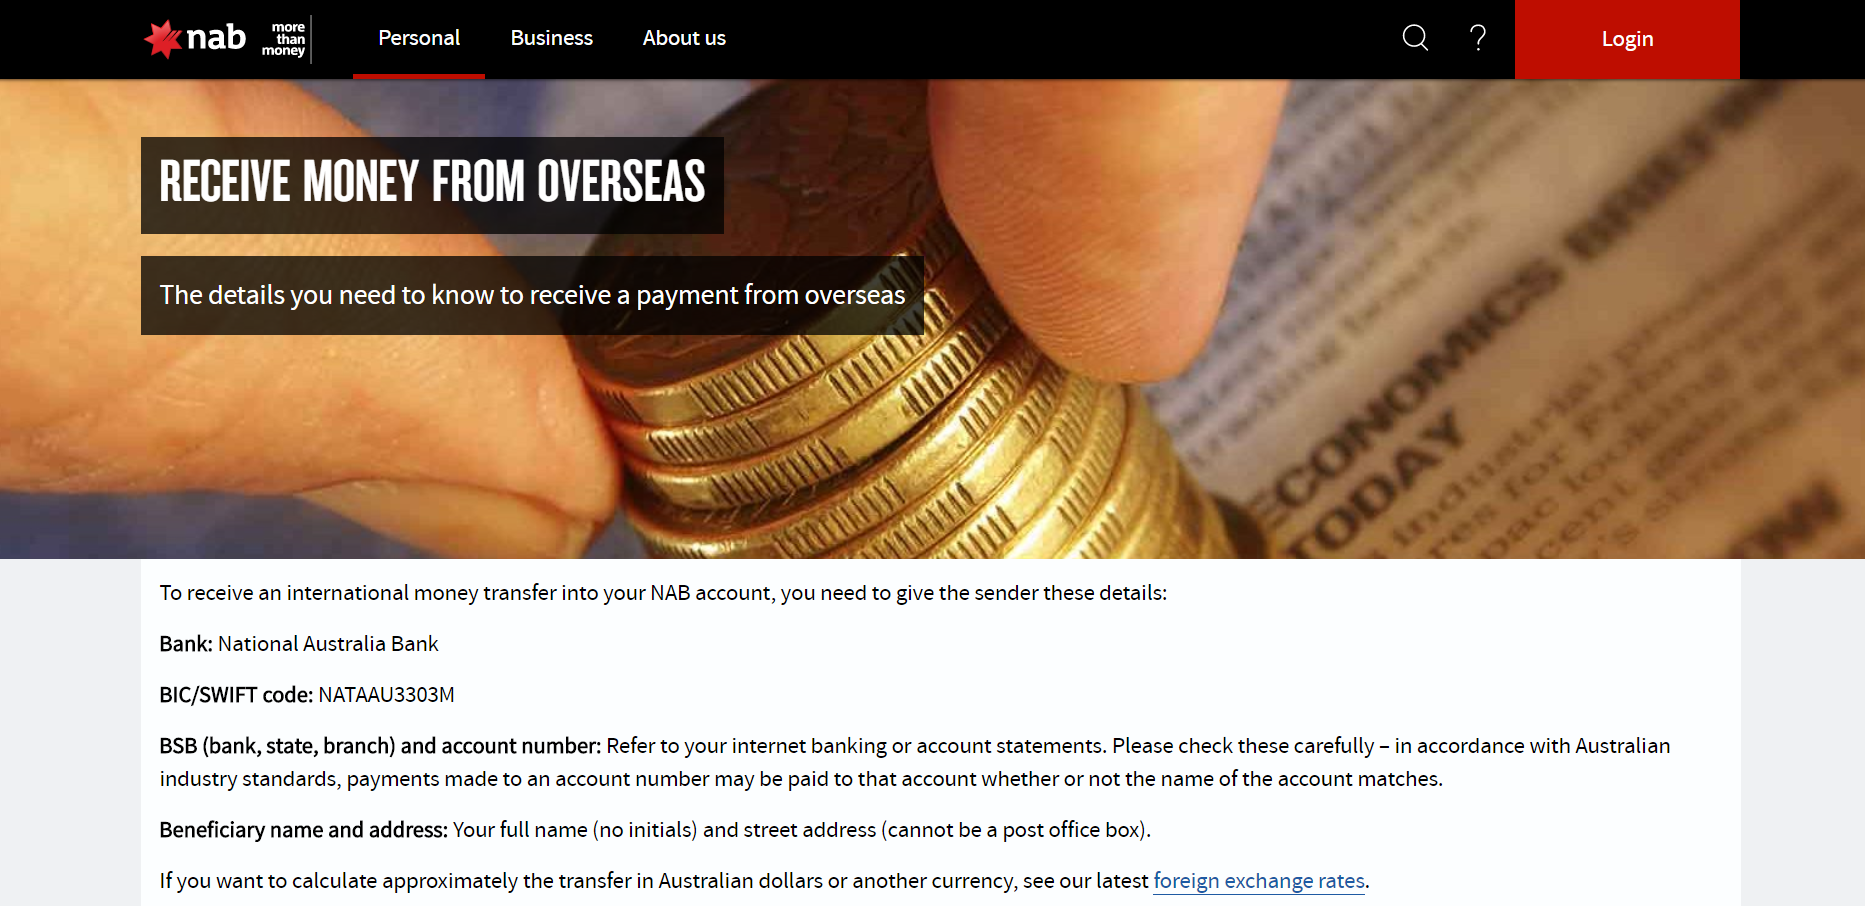 How to Receive Money From Overseas Using The National Australia Bank